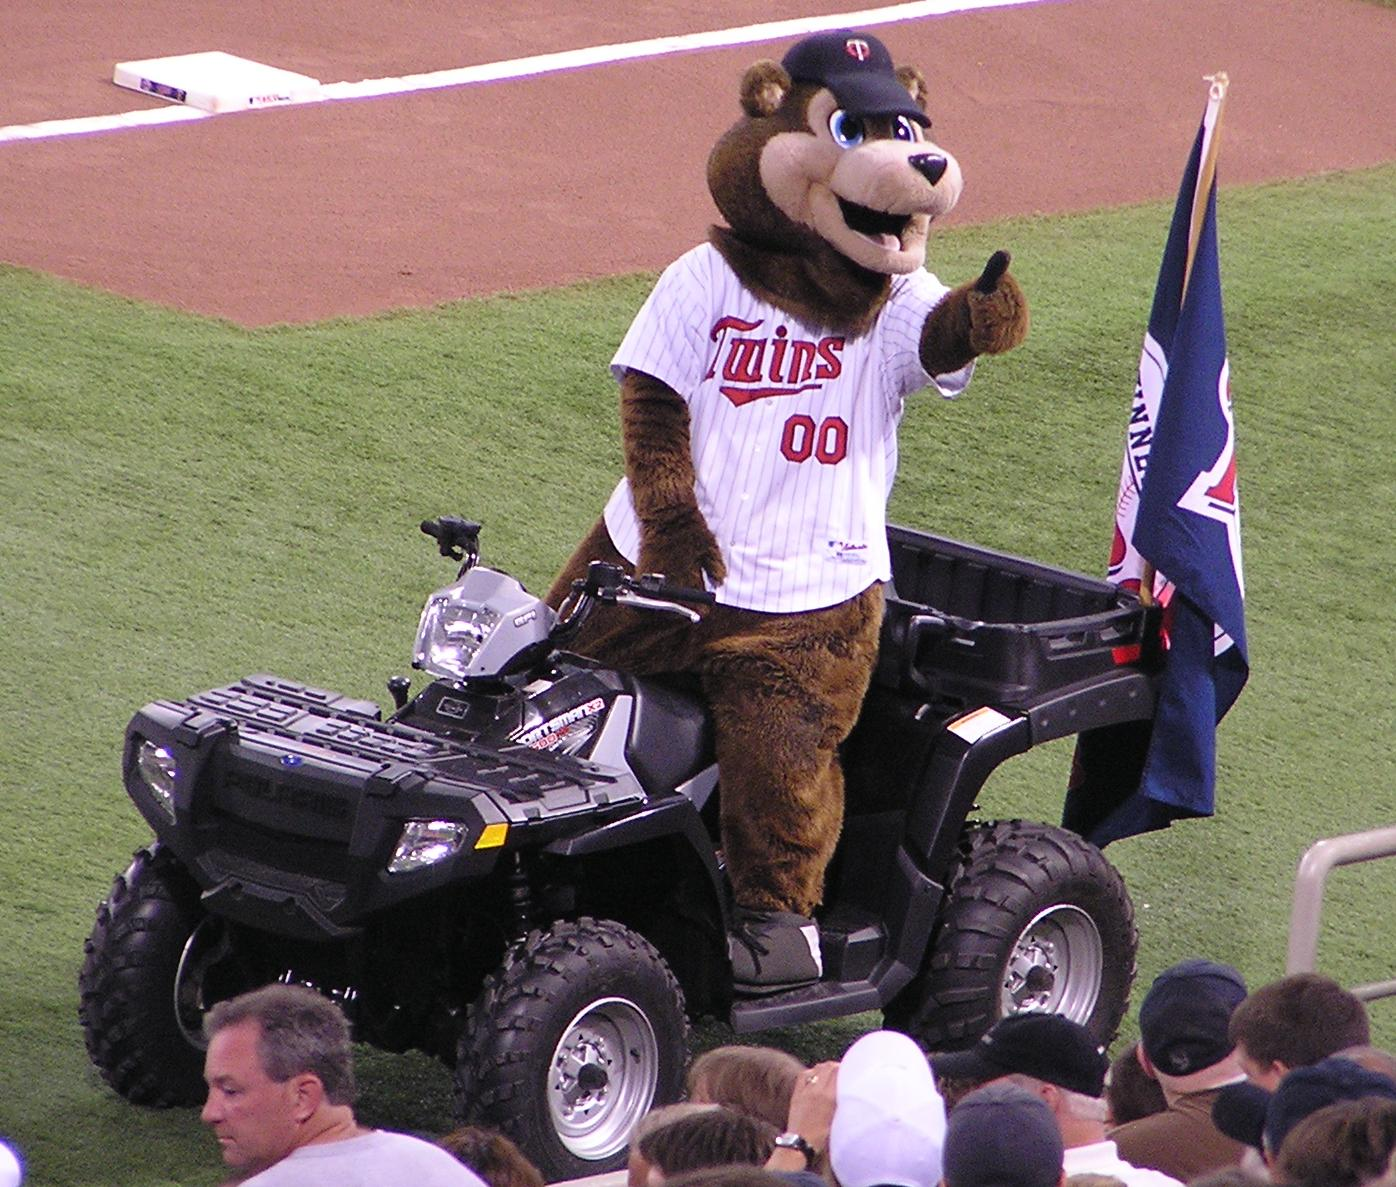 T.C. the Twins Mascot, HHH Metrodome, Minneapolis